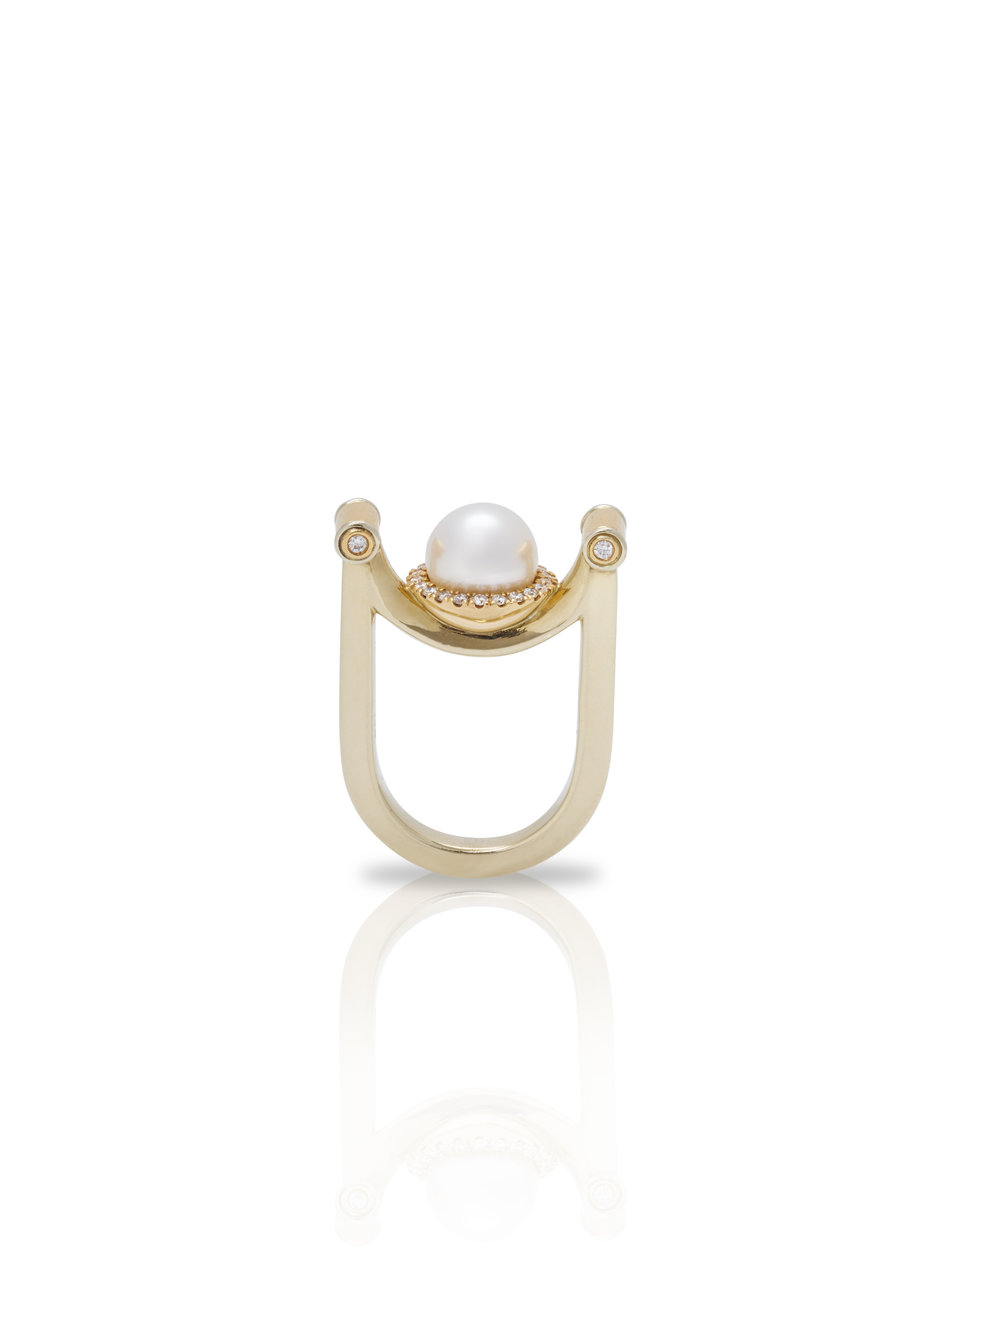 INVERTED PEARL RING    18K Gold, South Sea Pearl 0.3 CT Diamonds